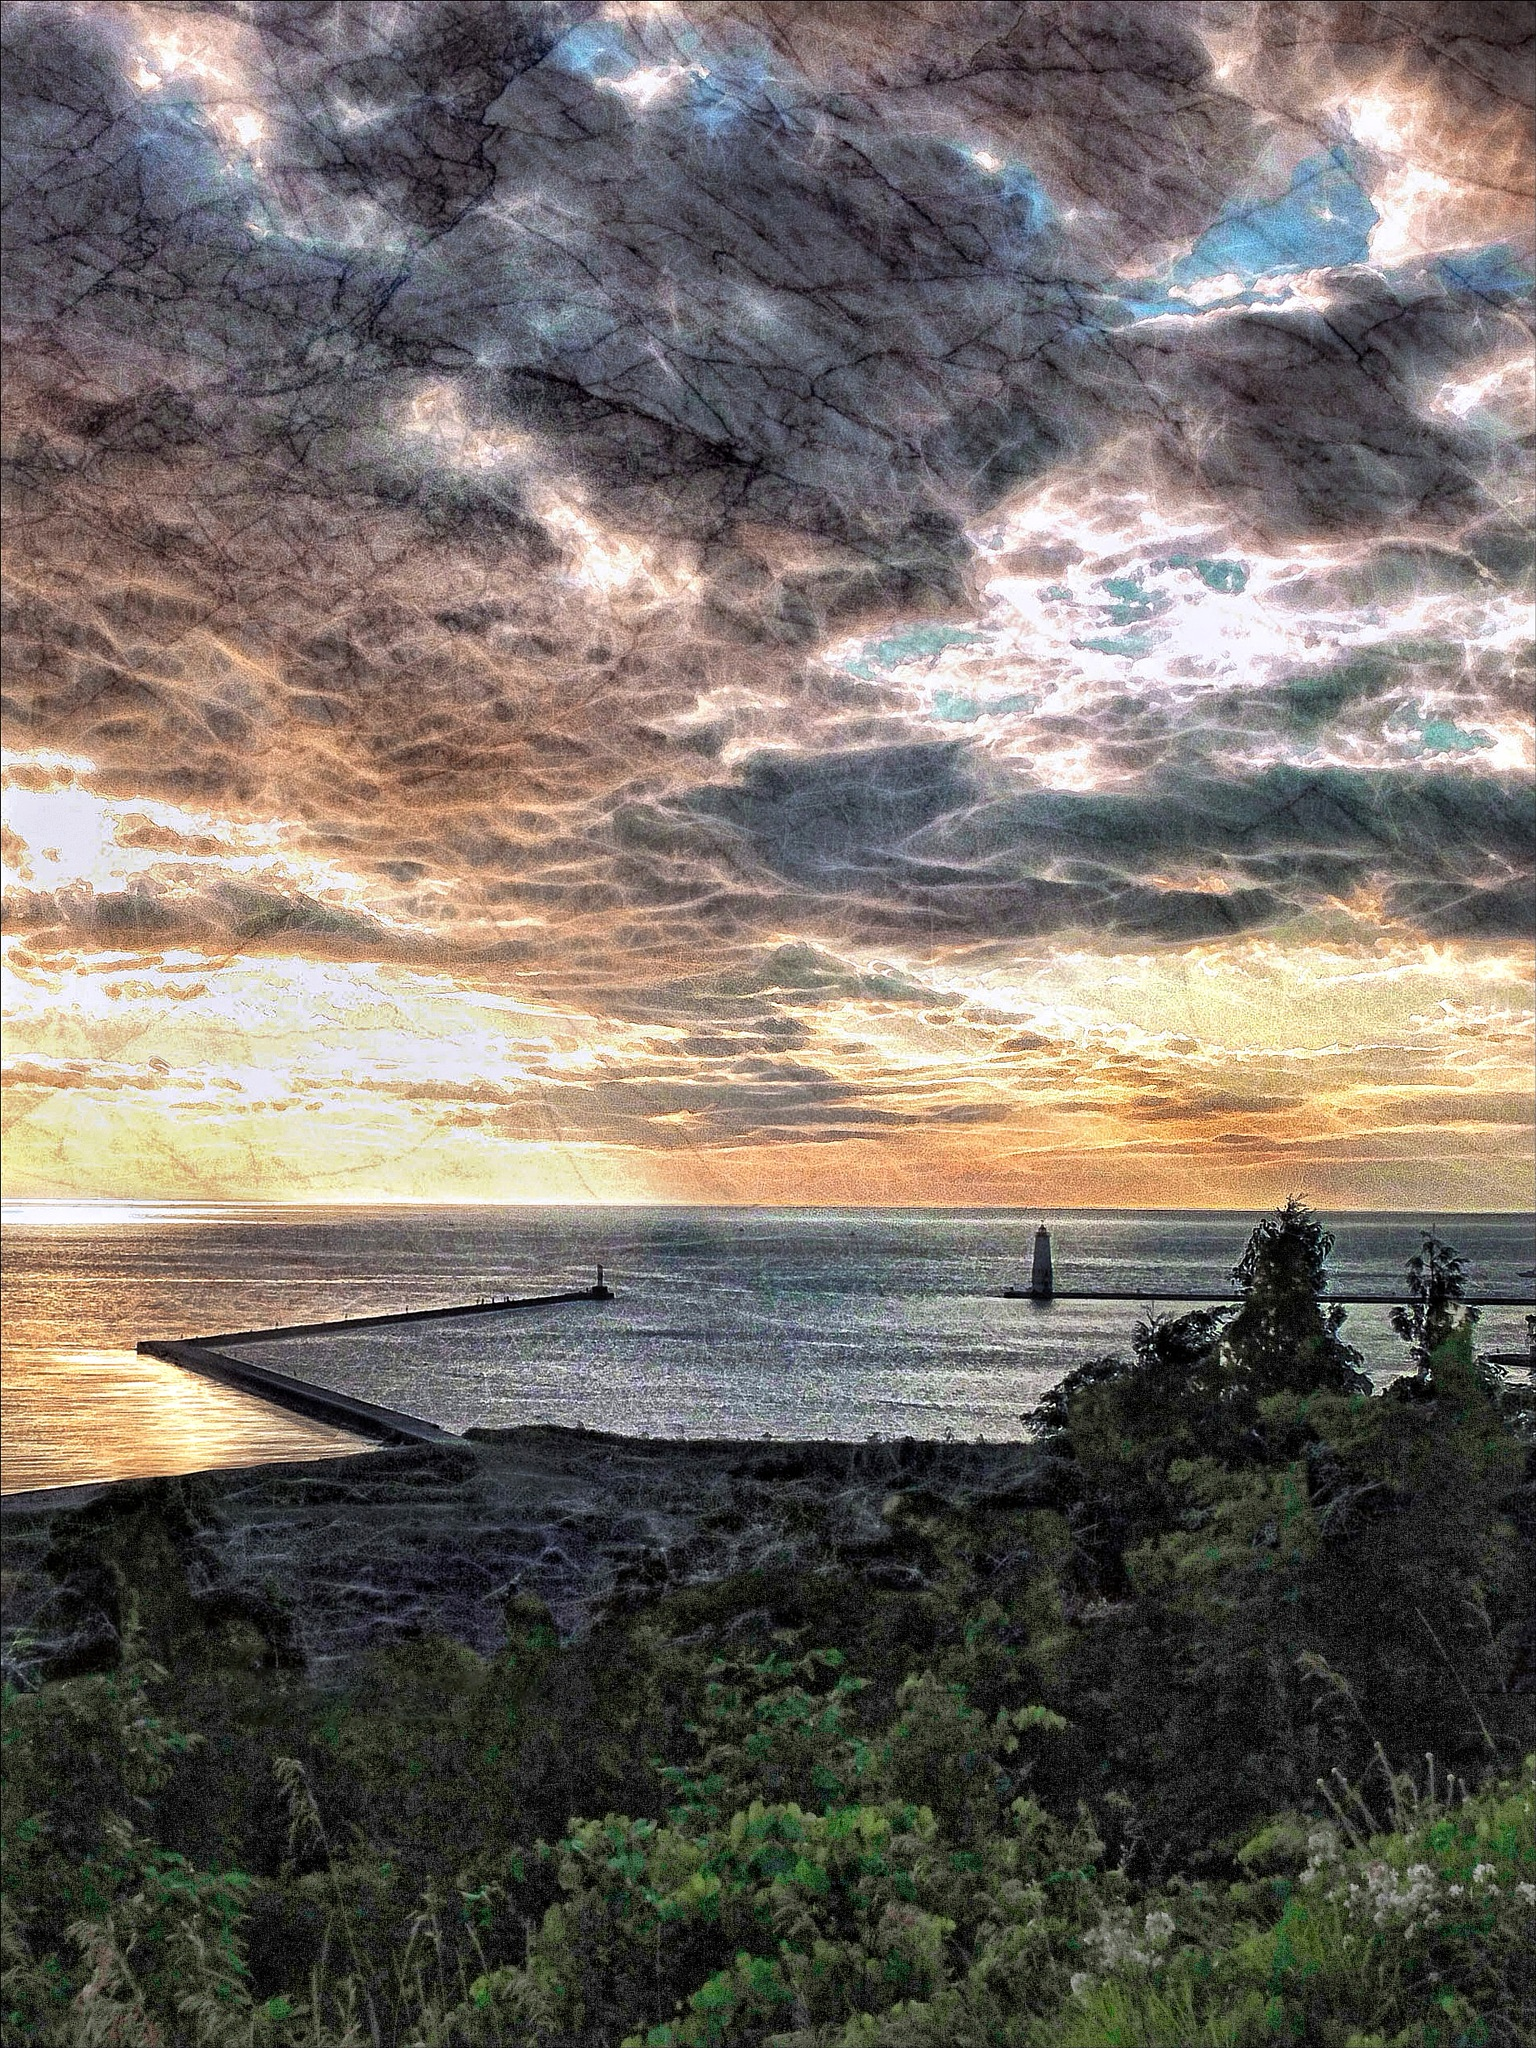 Lake Michigan from an Overlook by Bob Yankle